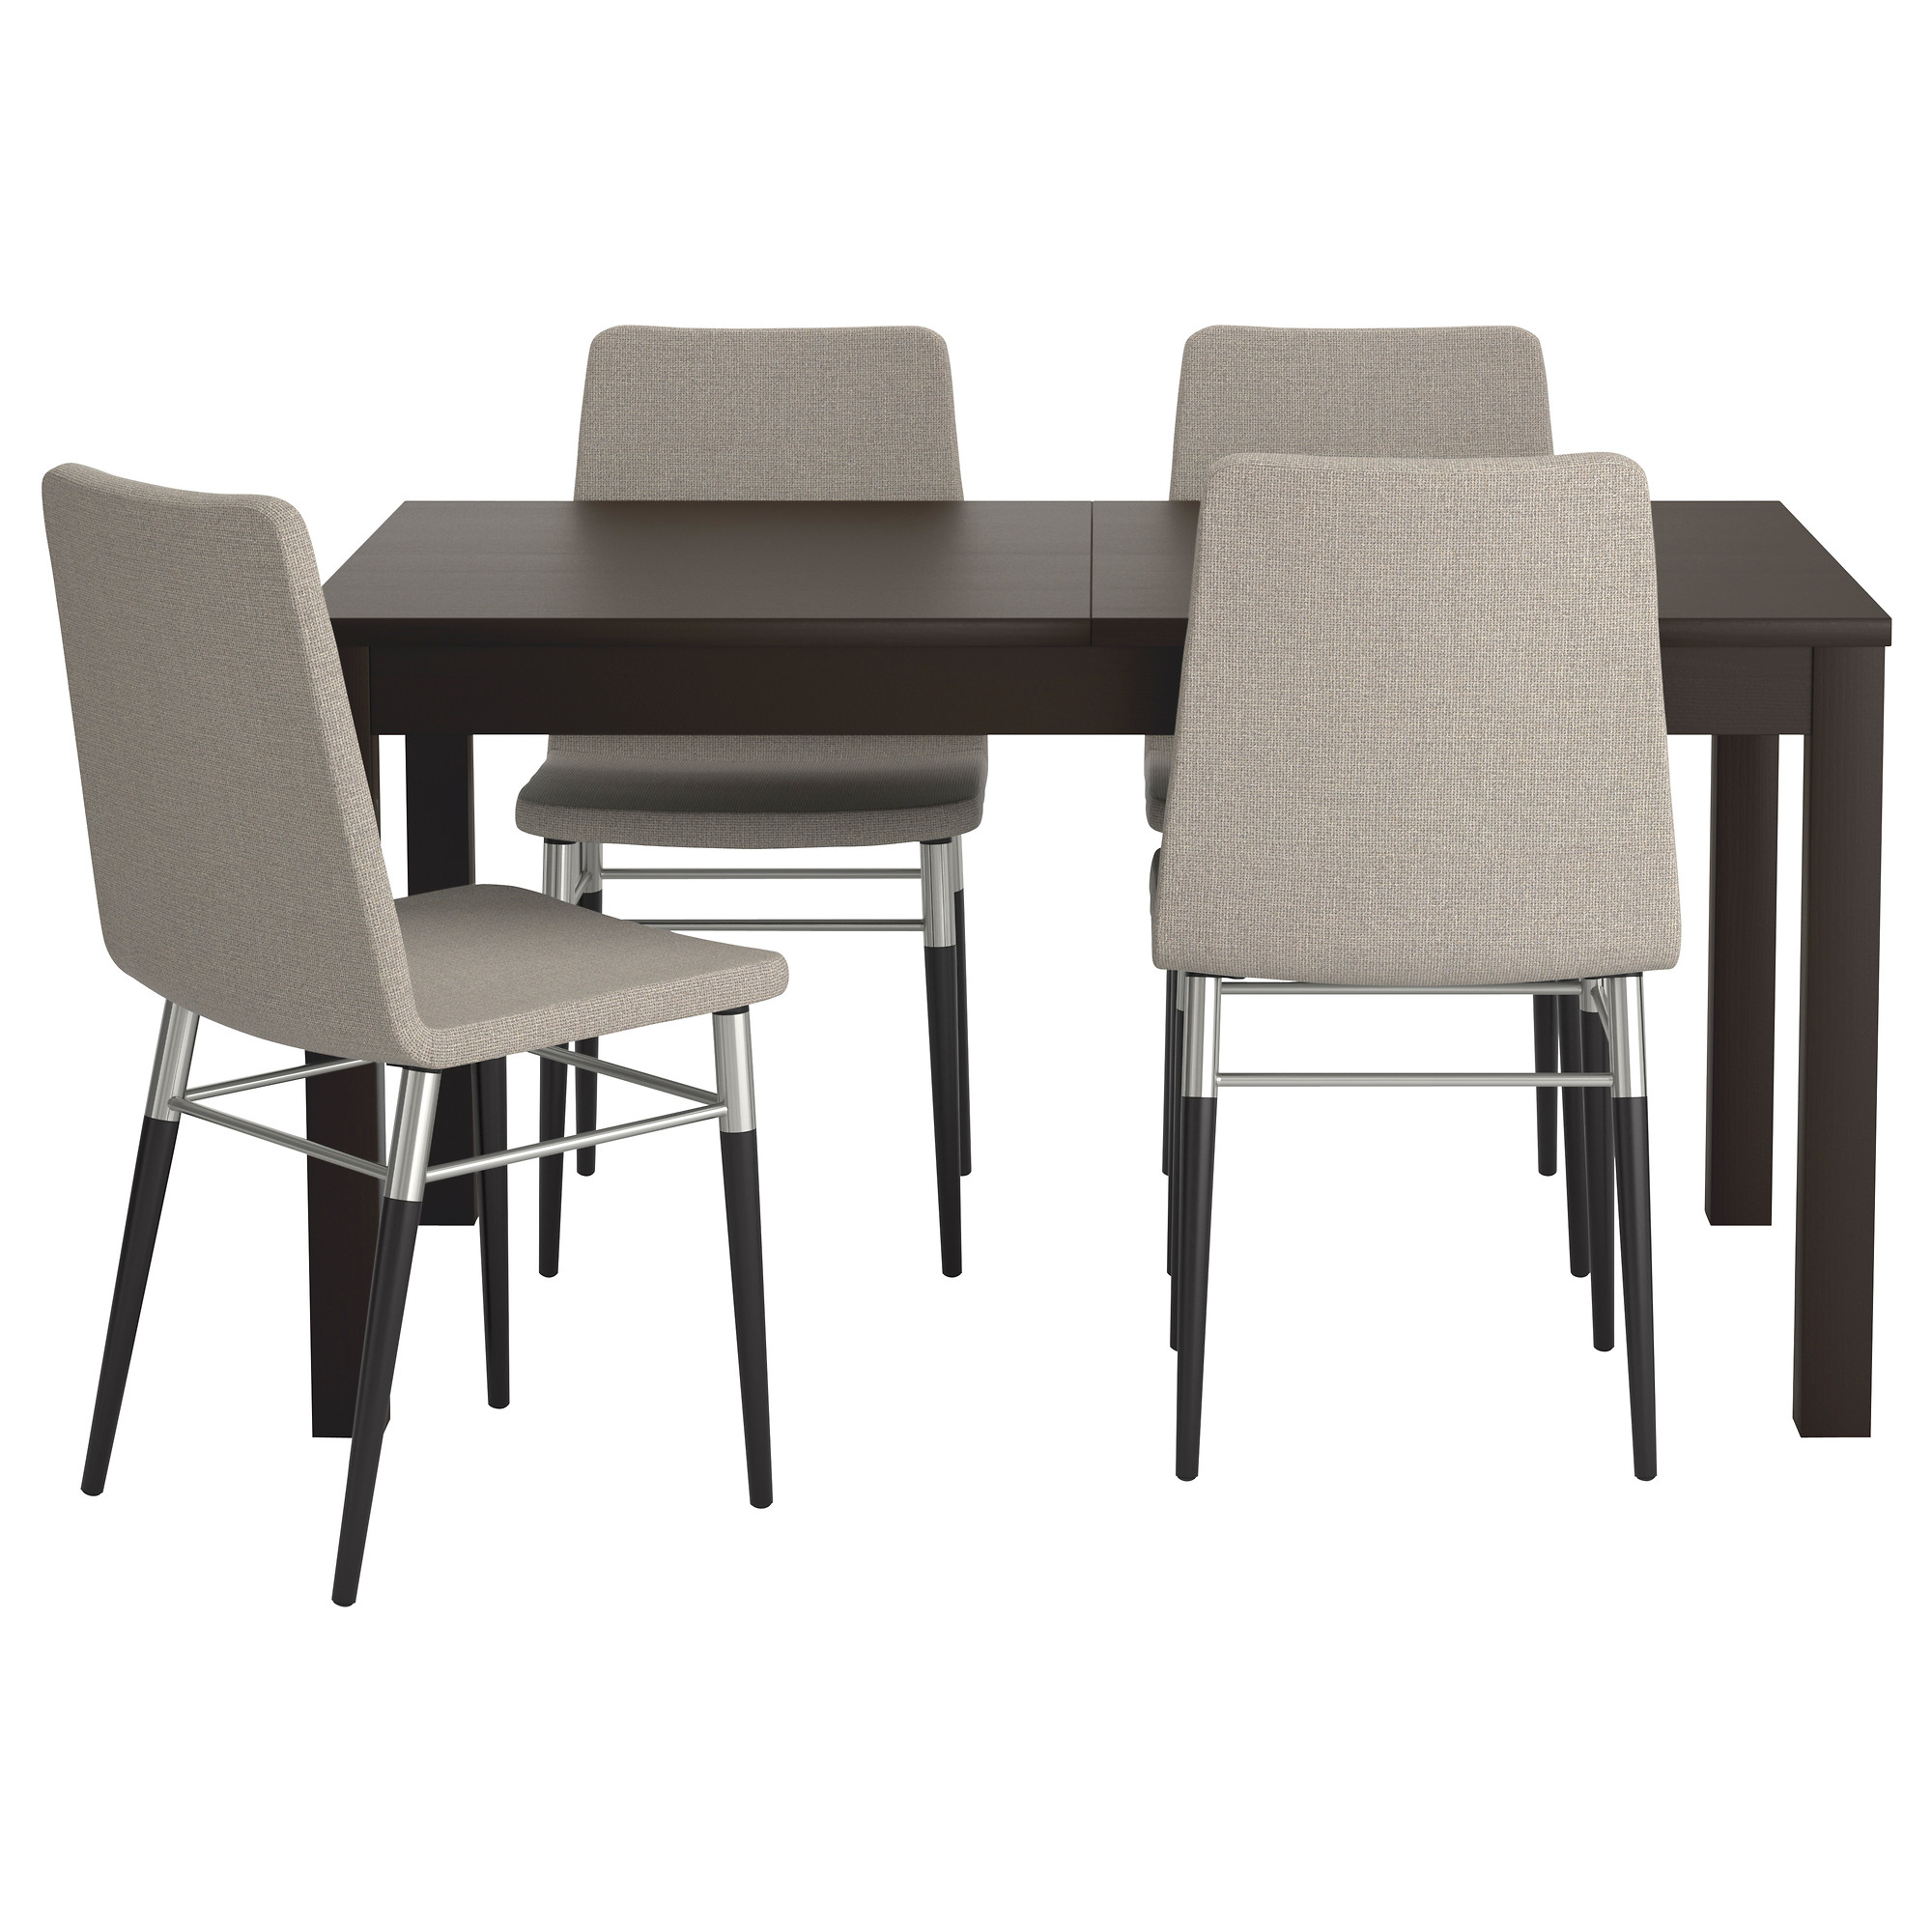 BJURSTA PREBEN Table And 4 Chairs